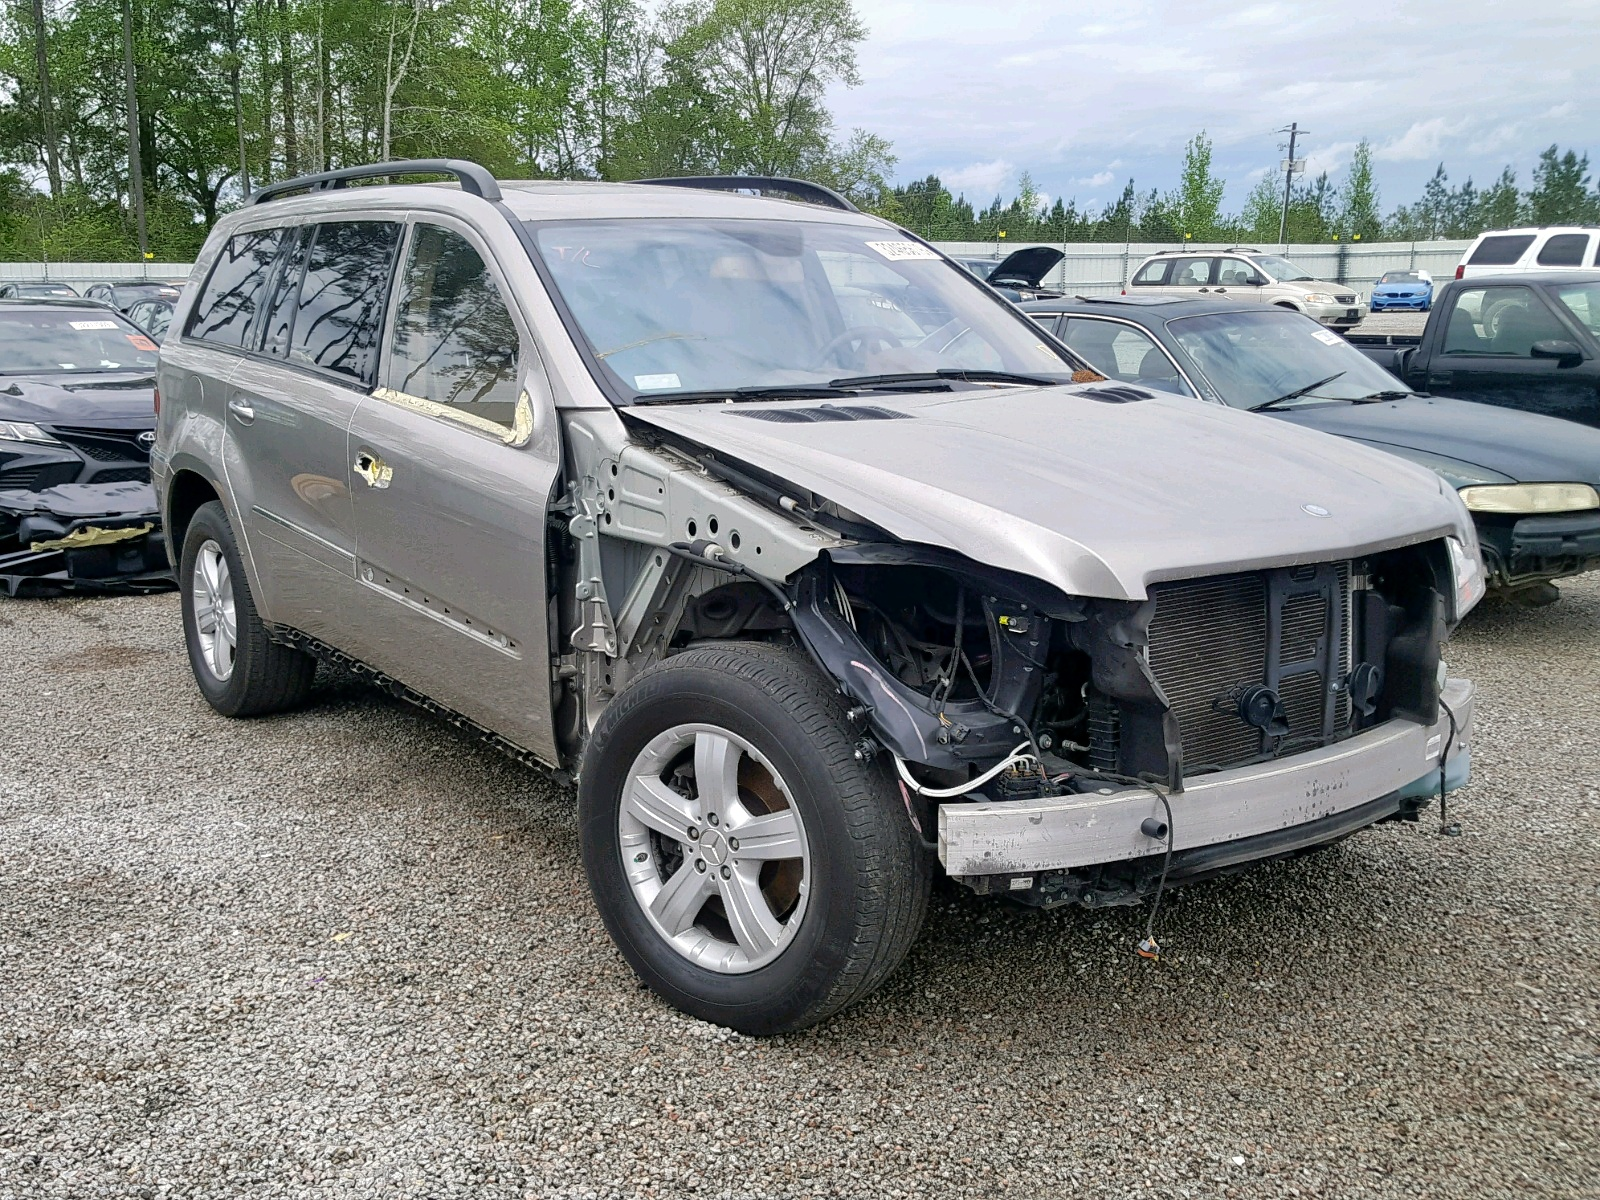 Salvage 2007 Mercedes-Benz GL 450 4MATIC for sale